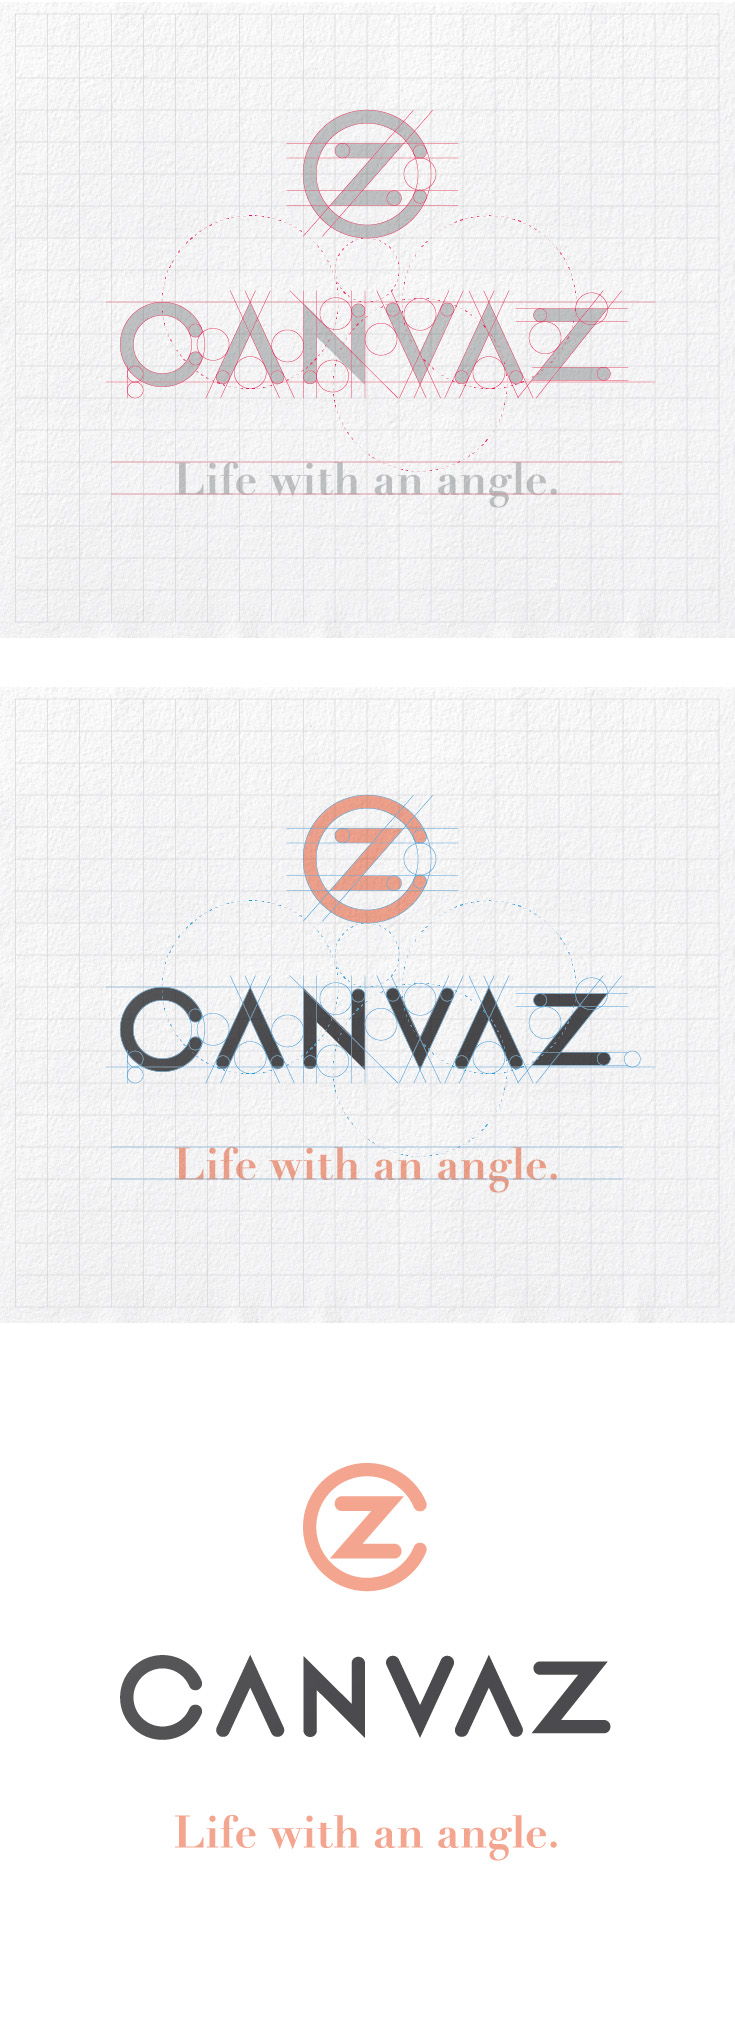 Canvaz Brand Identity Design by Justin Tsui